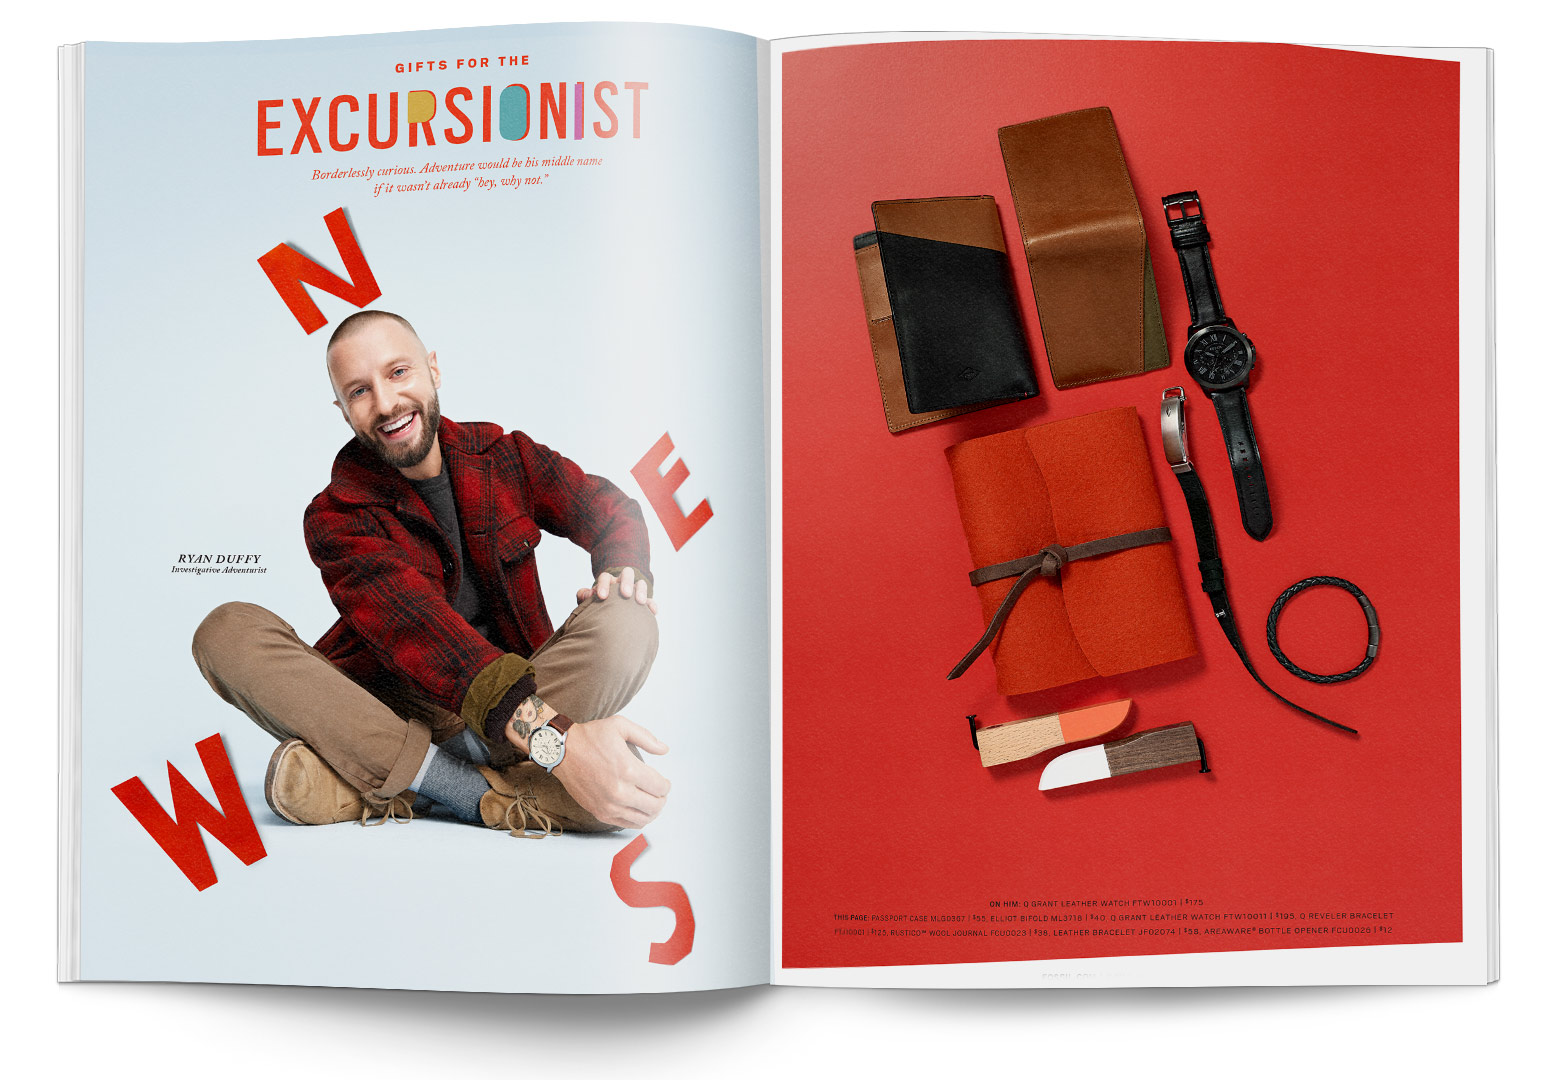 Fossil_Holiday_GiftGuide_1920x1080_9_FR1